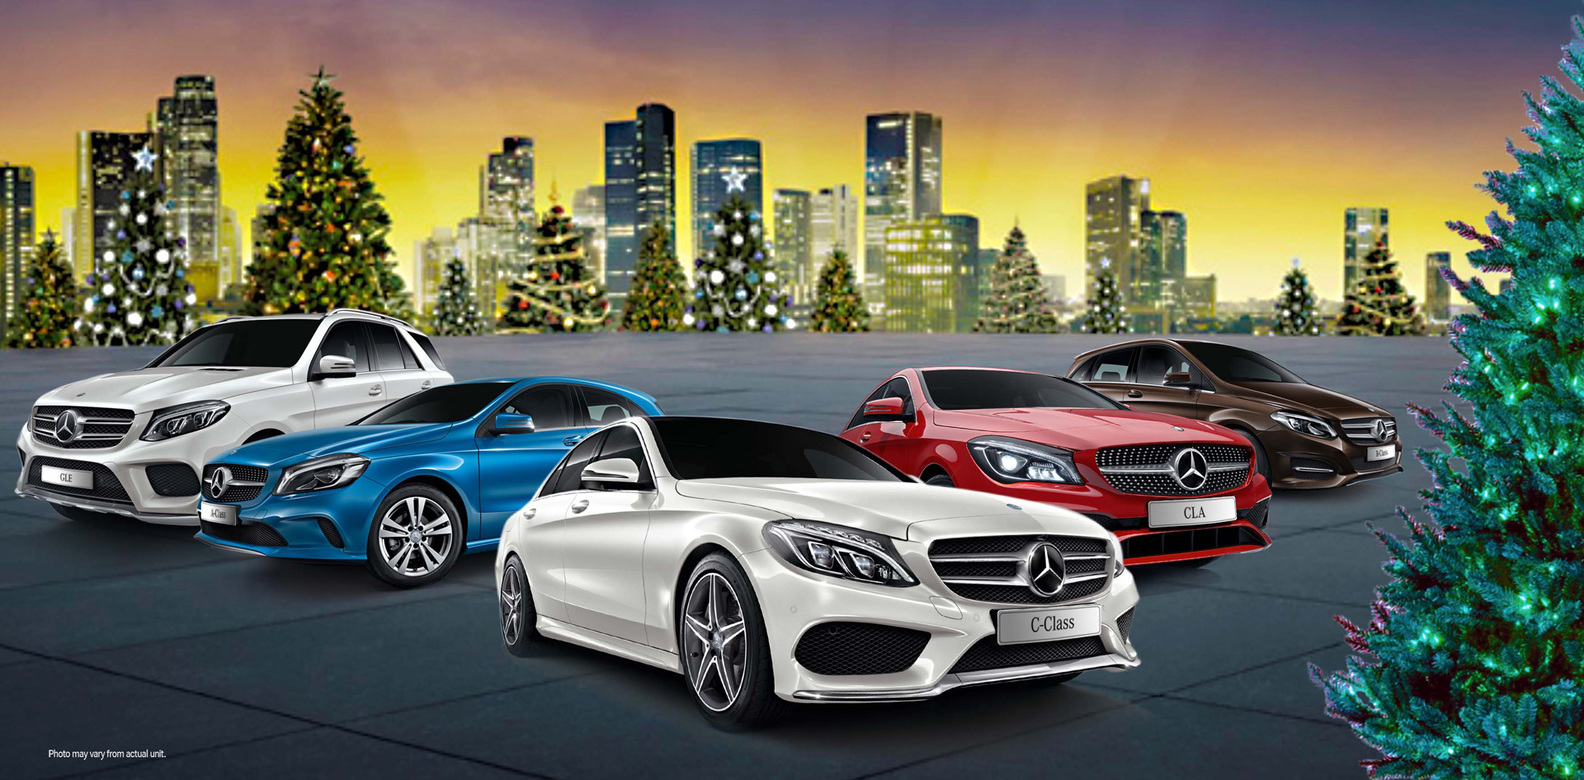 Mercedes benz holiday offers philippine tatler for Mercedes benz offers